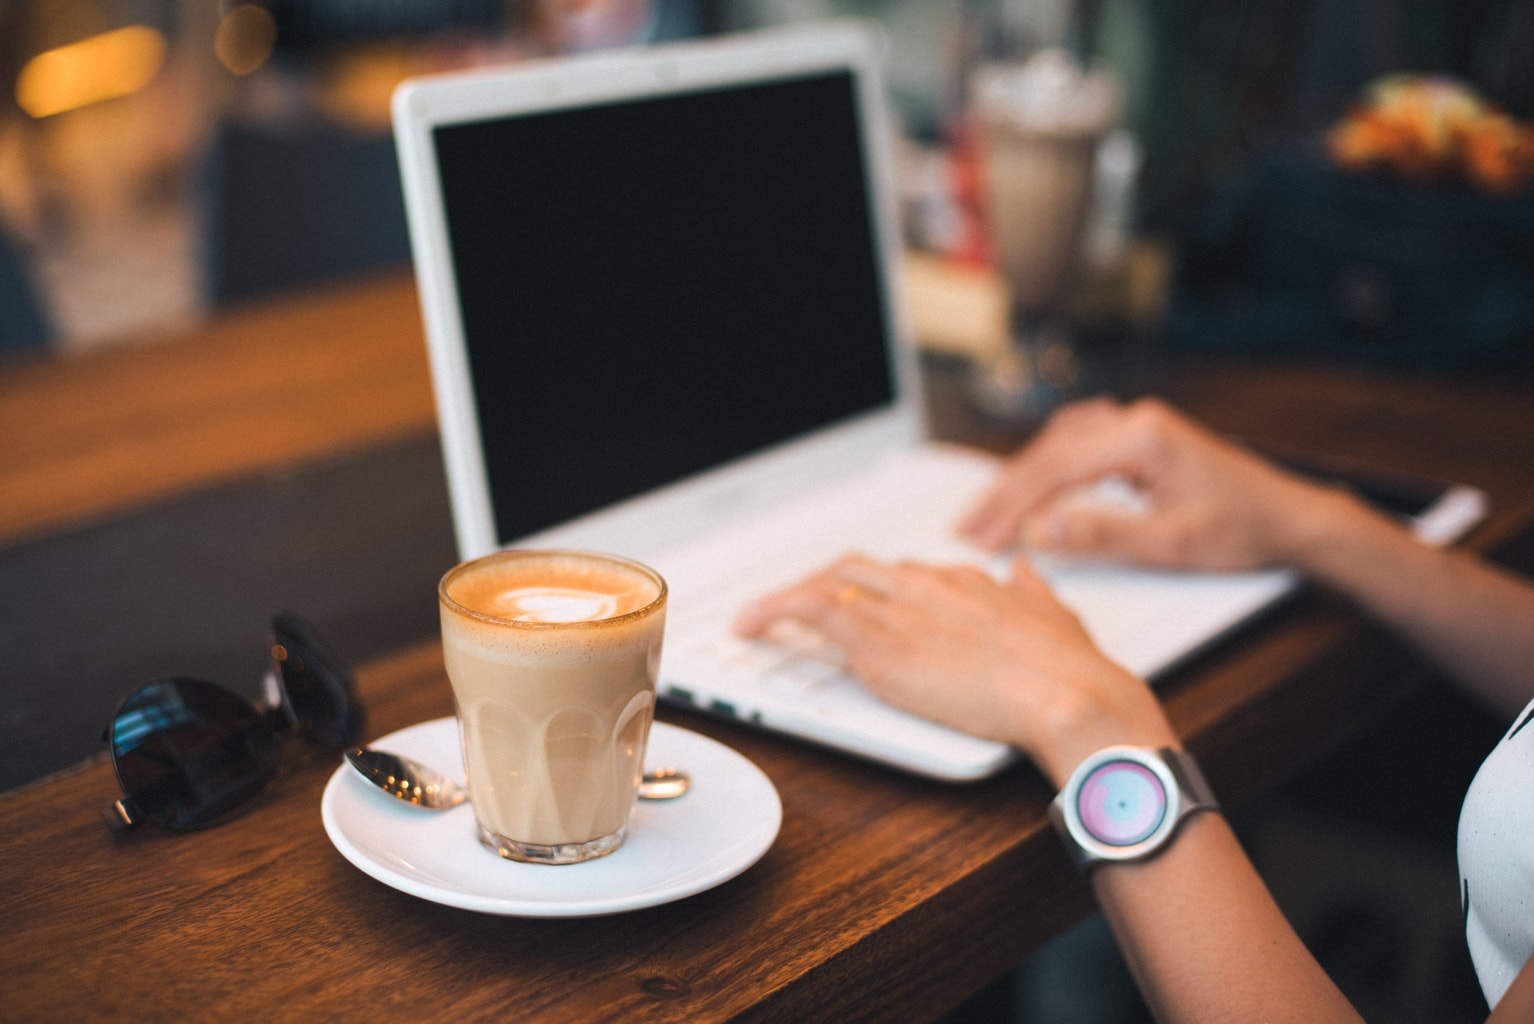 Girl wearing a watch working on a computer with a coffee next to her.